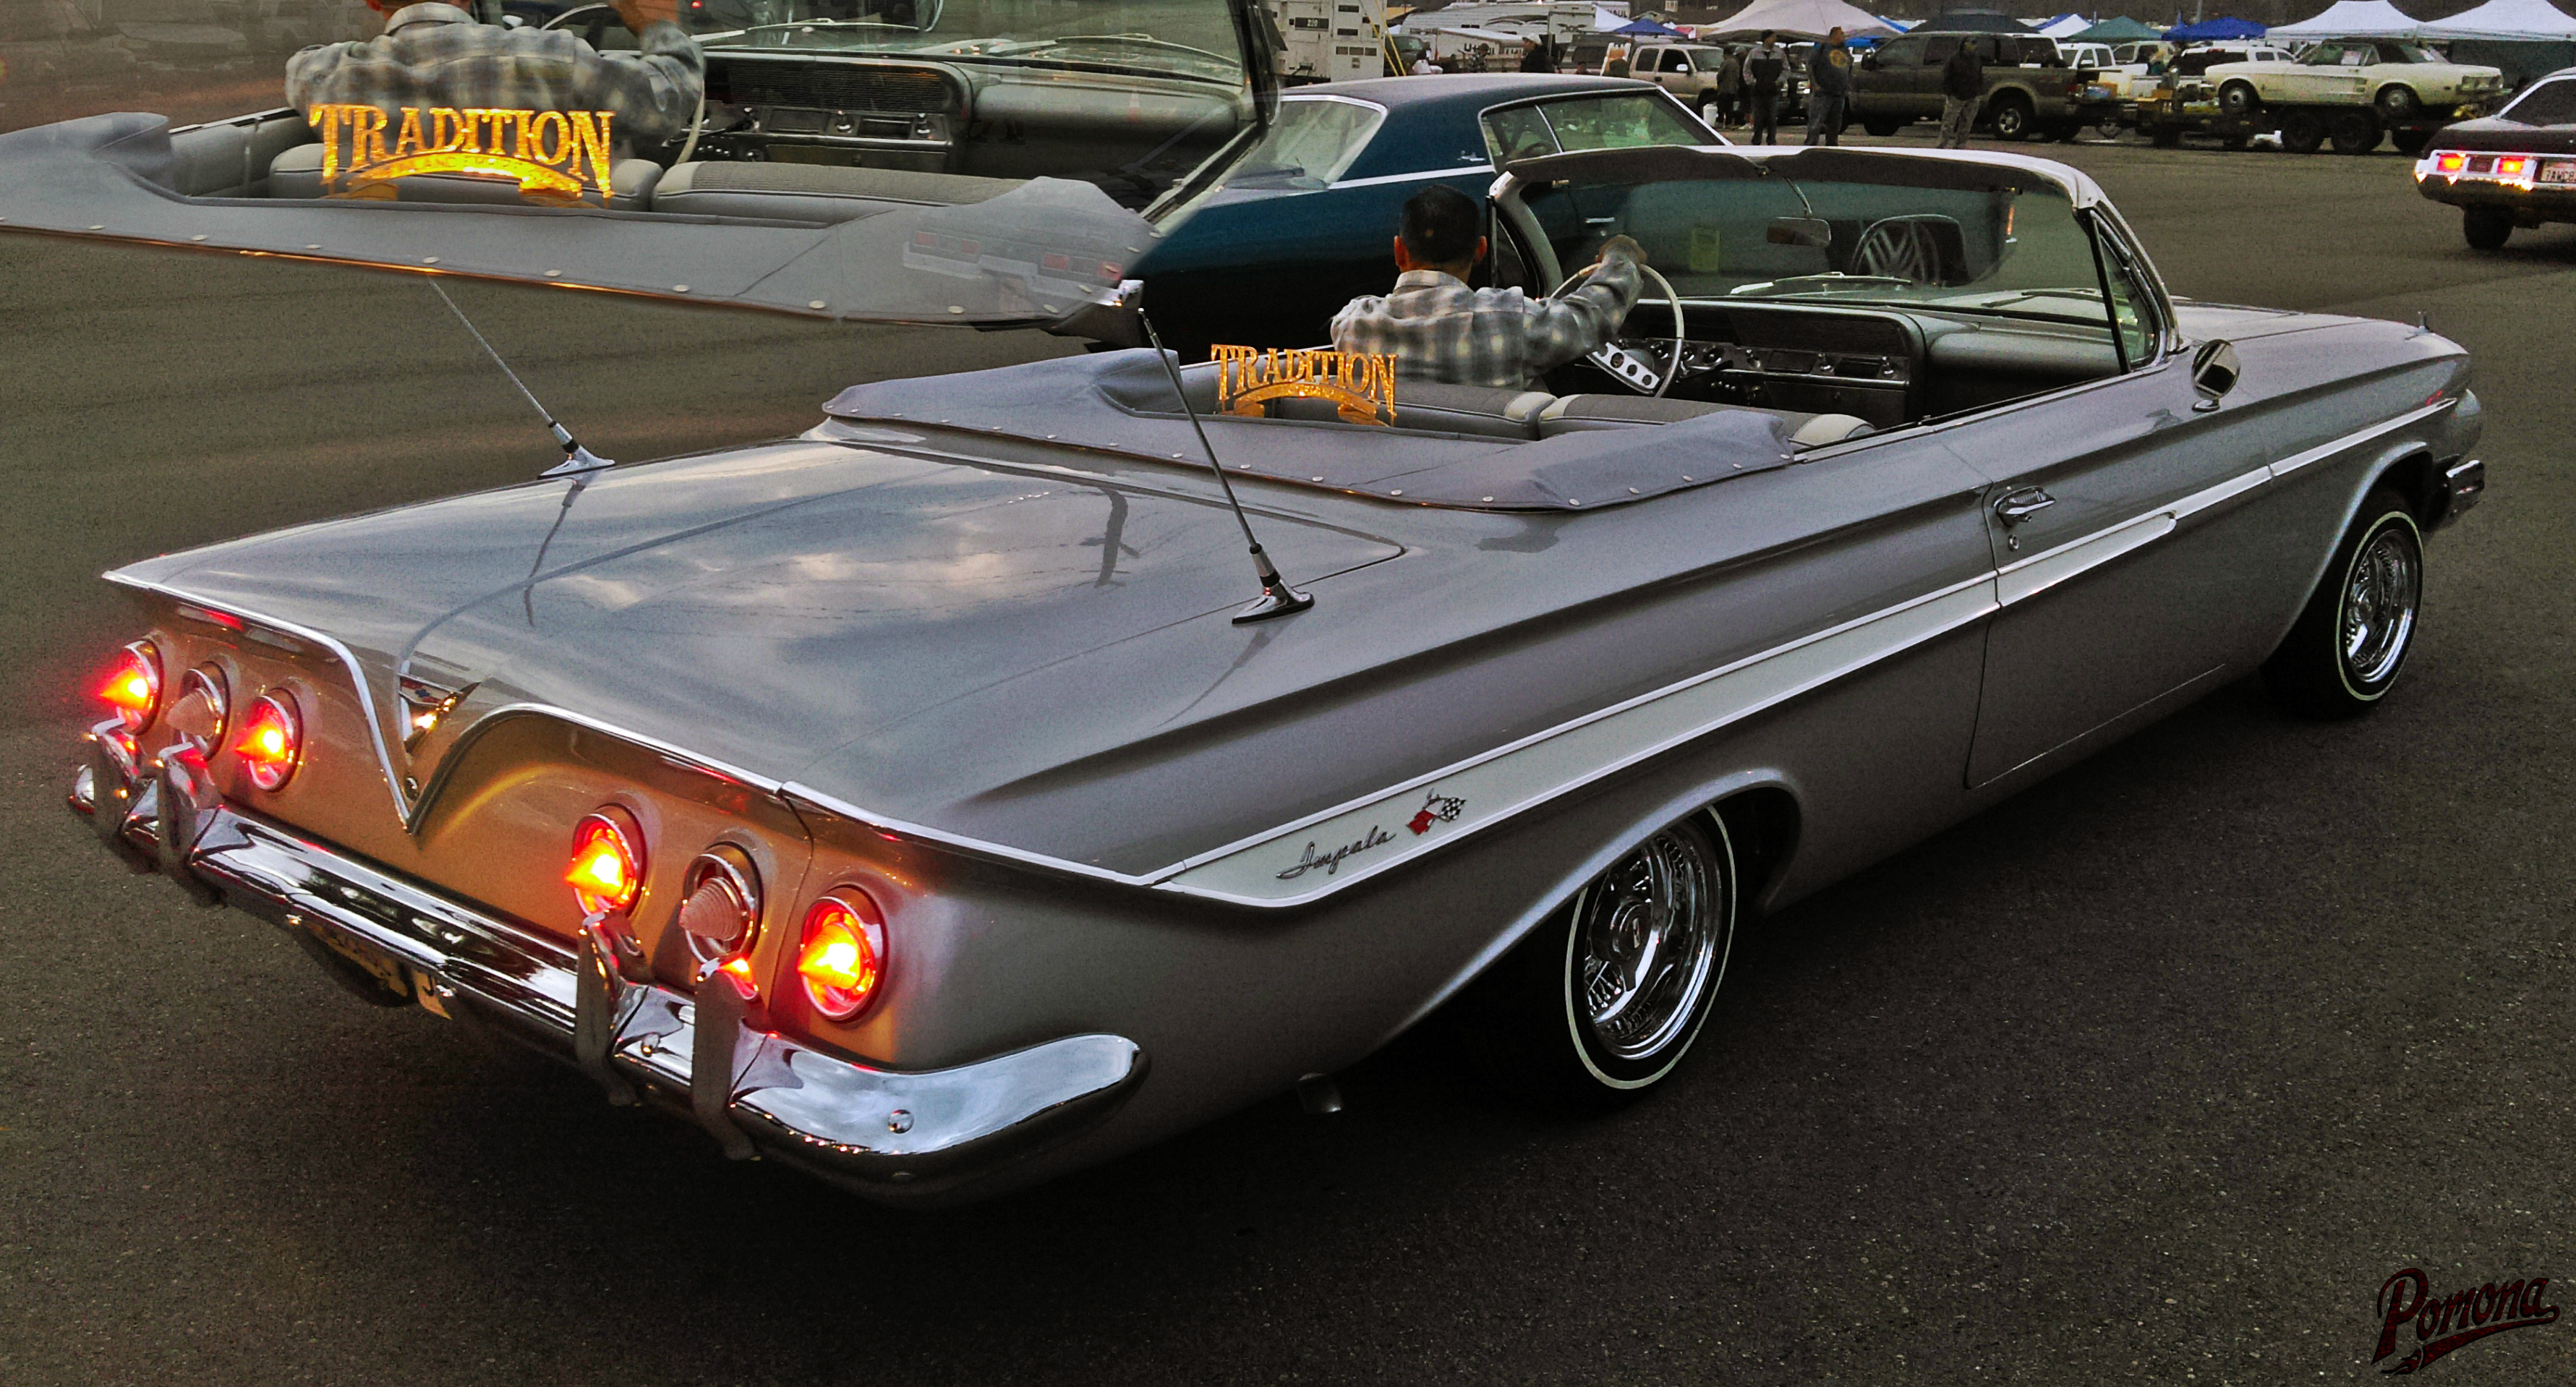 Tradition CC - 1961 Impala